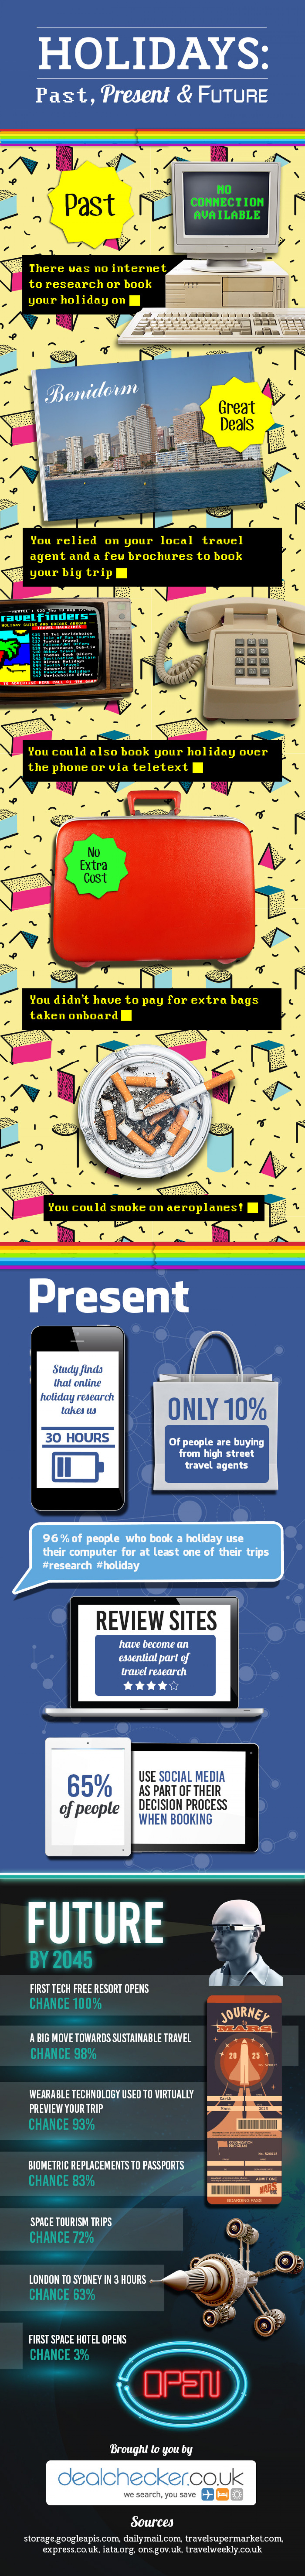 Holidays: Past, Present & Future Infographic